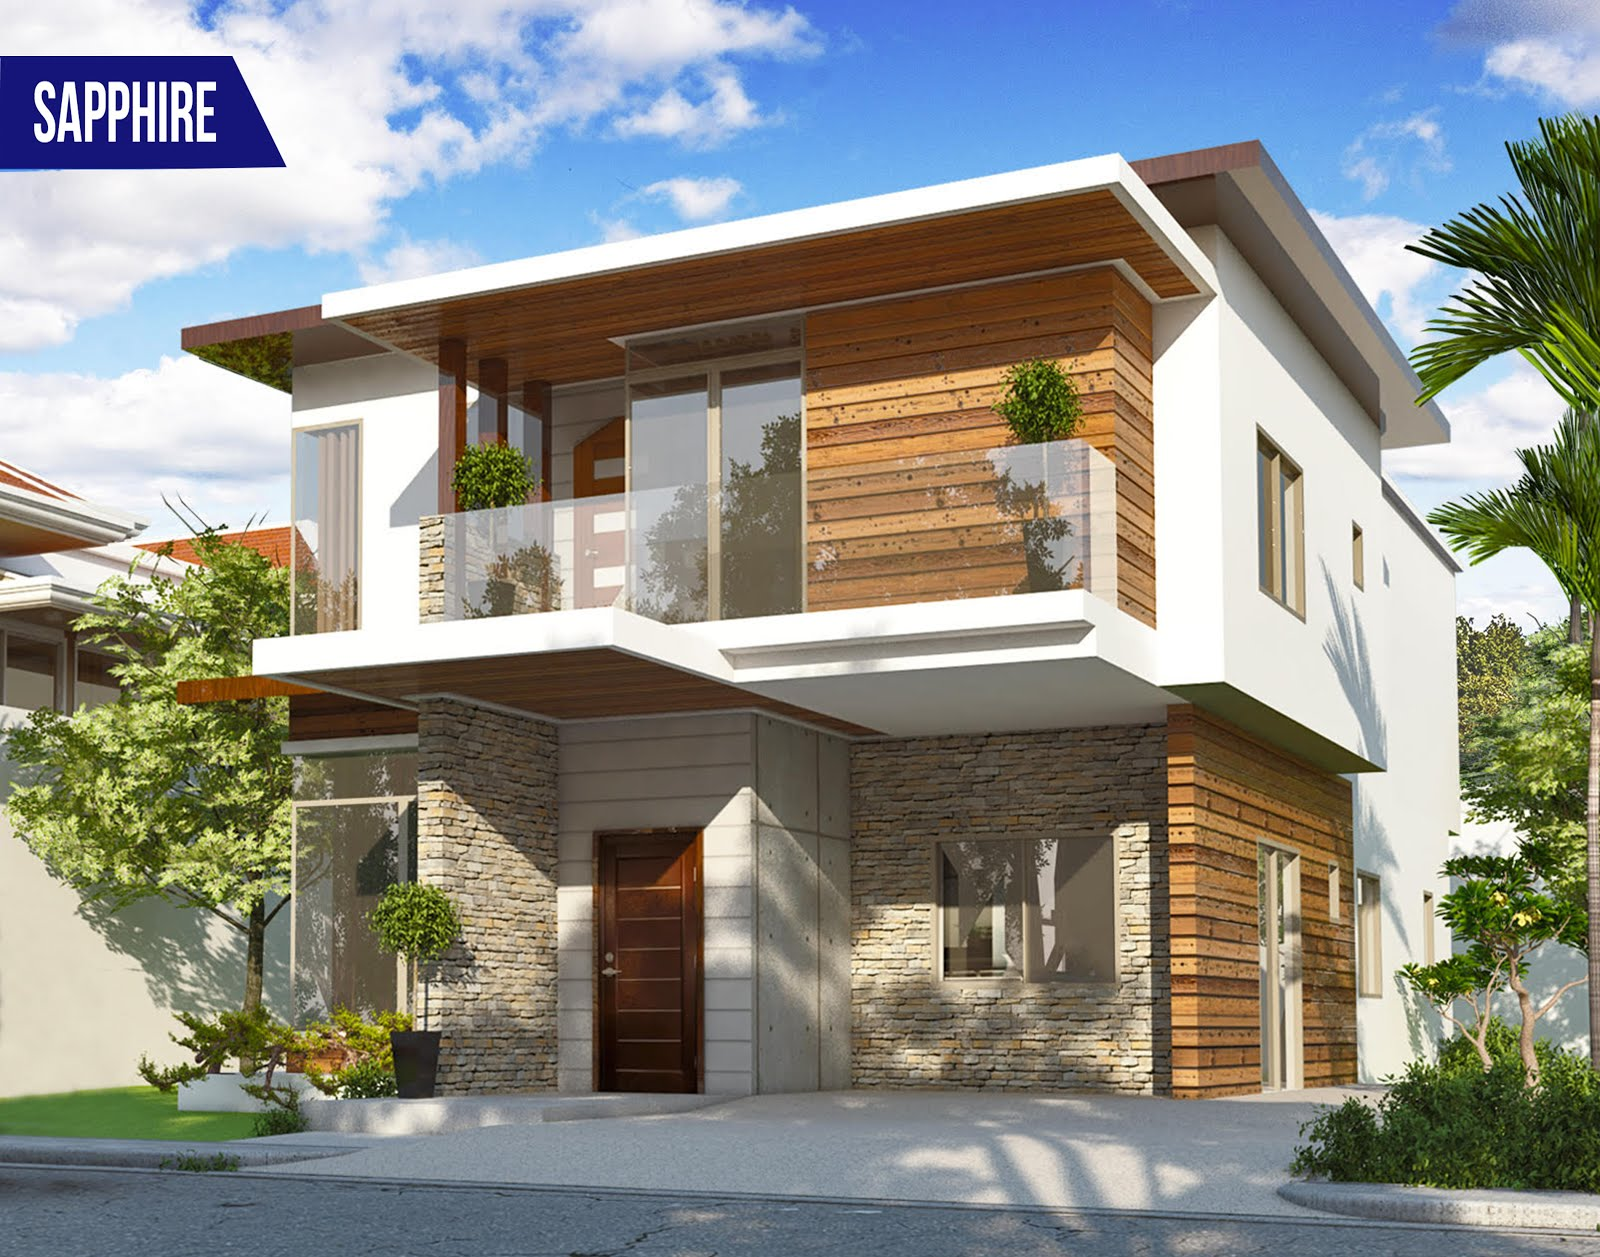 A smart philippine house builder the basics of latest Latest home design